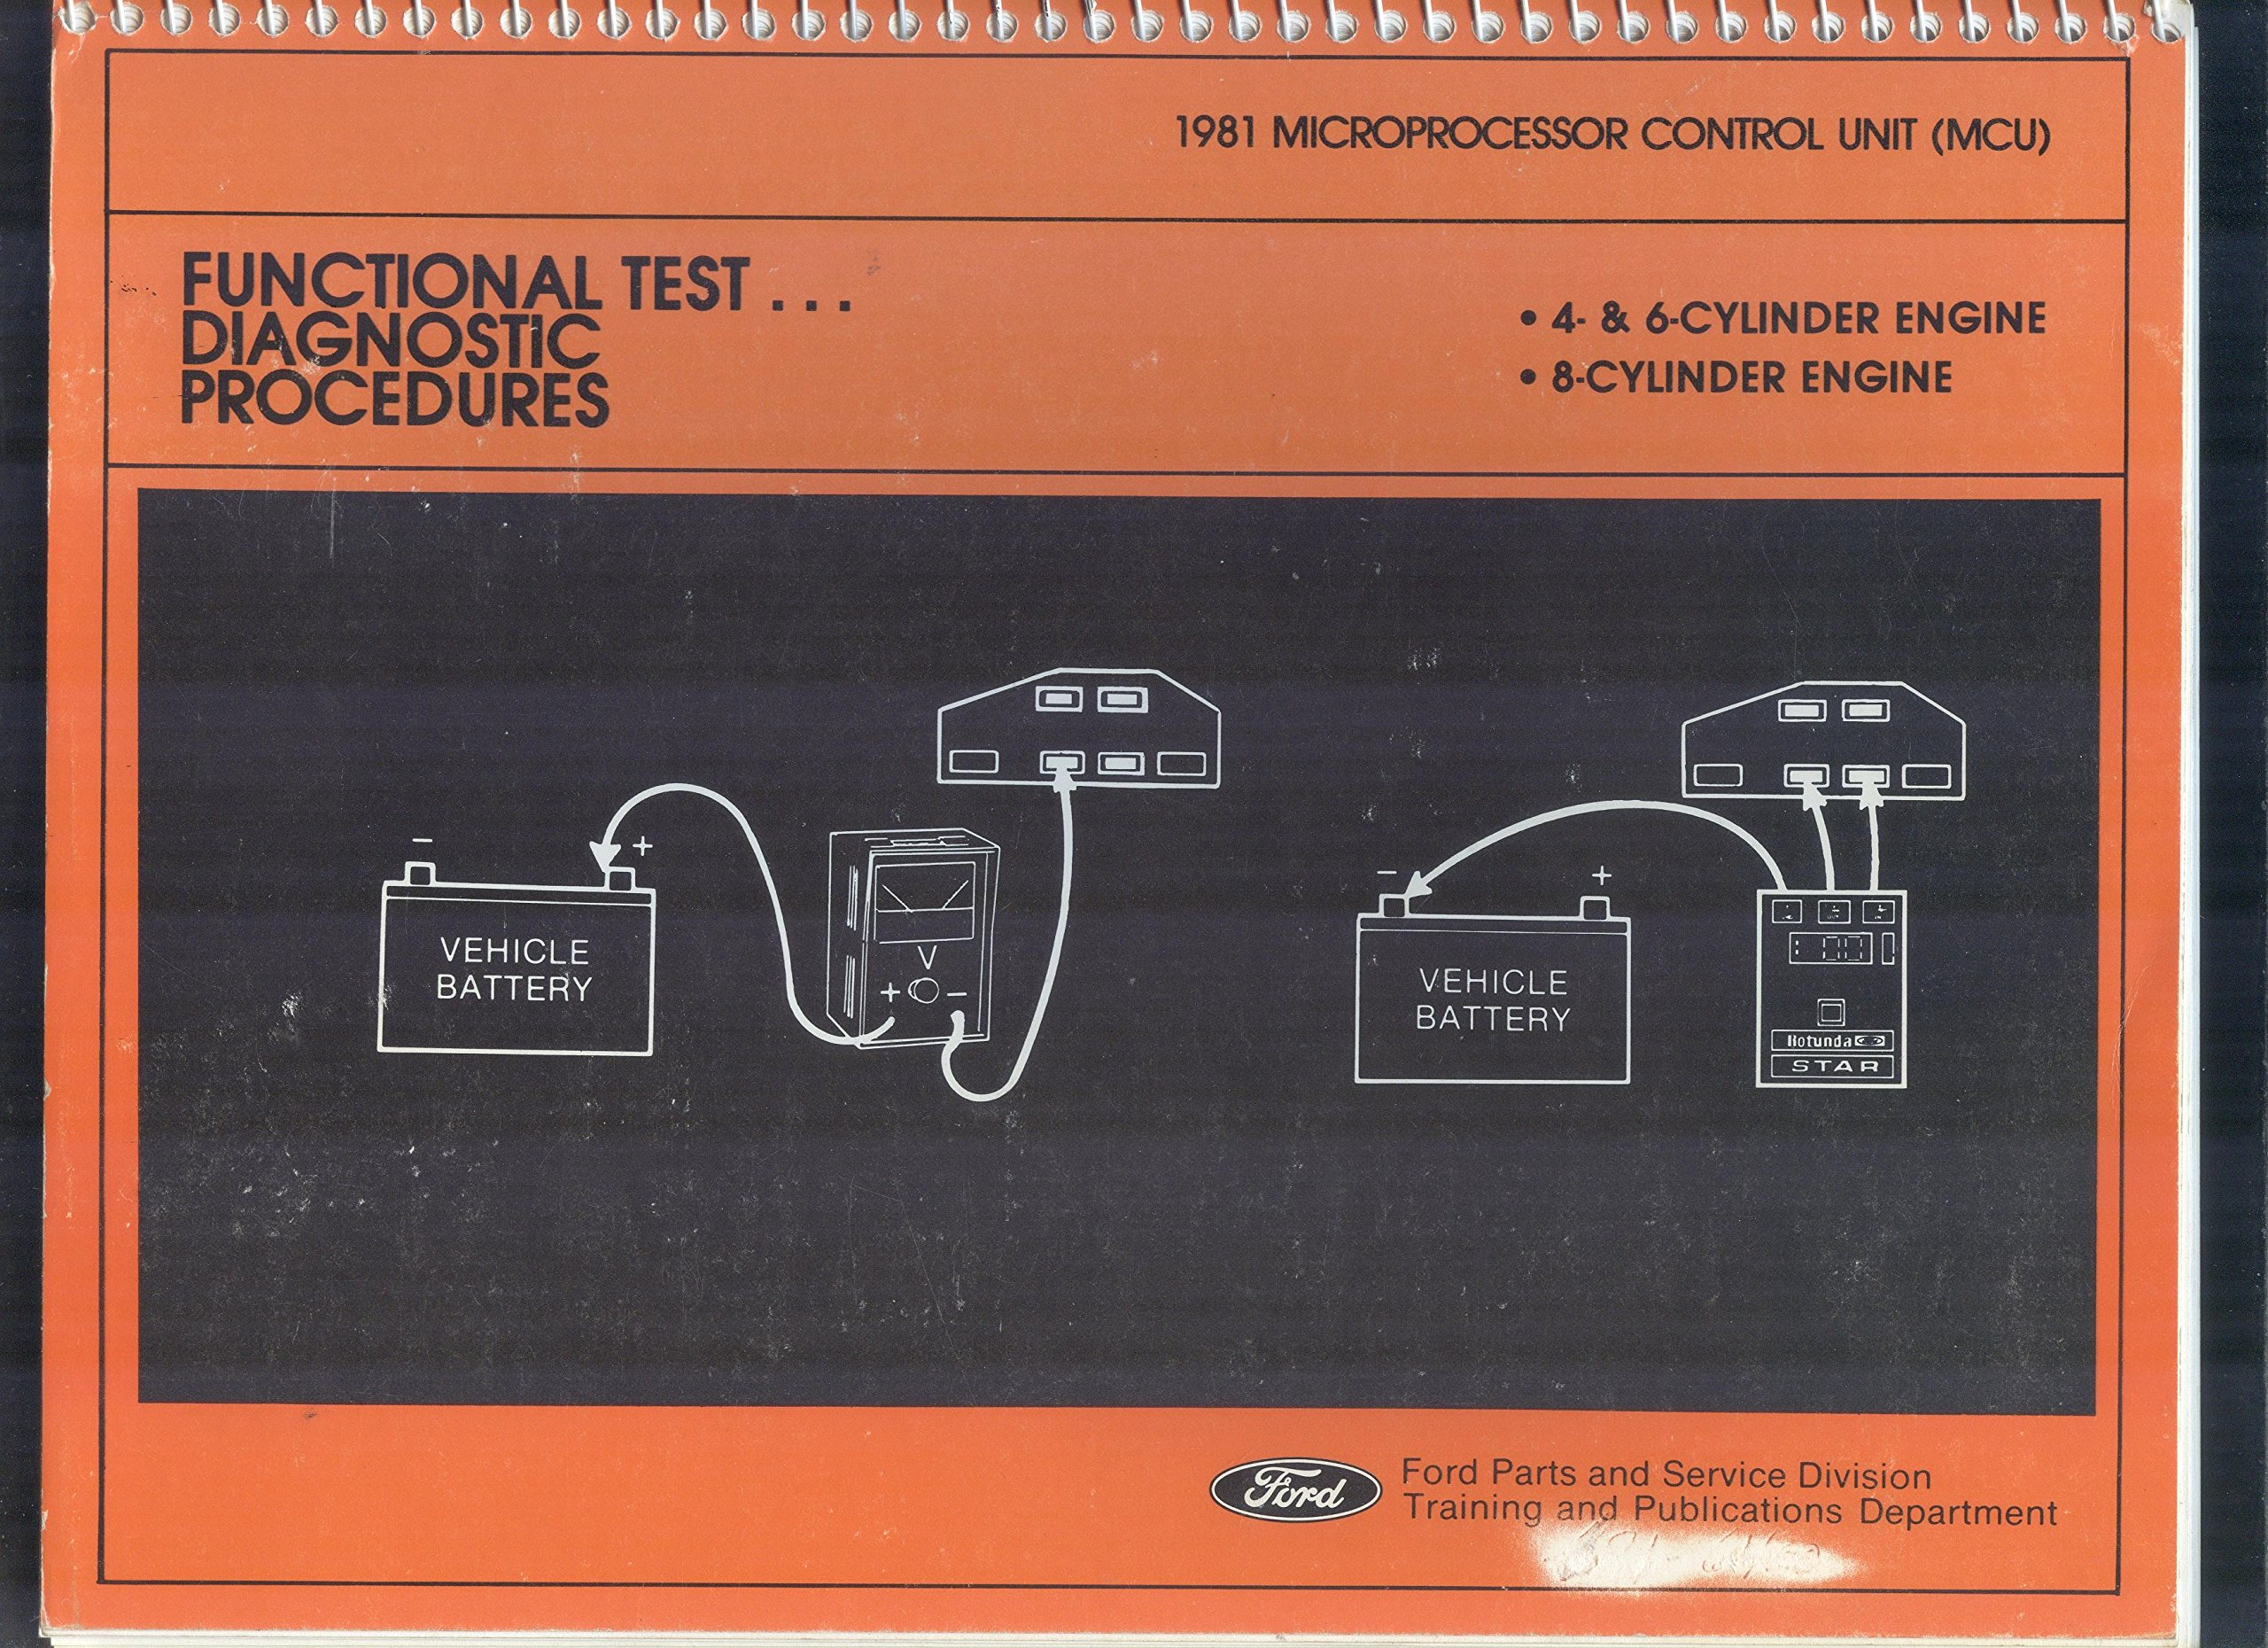 Wondrous 1981 Microprocessor Control Unit Mcu Functional Test Diagnostic Wiring 101 Swasaxxcnl